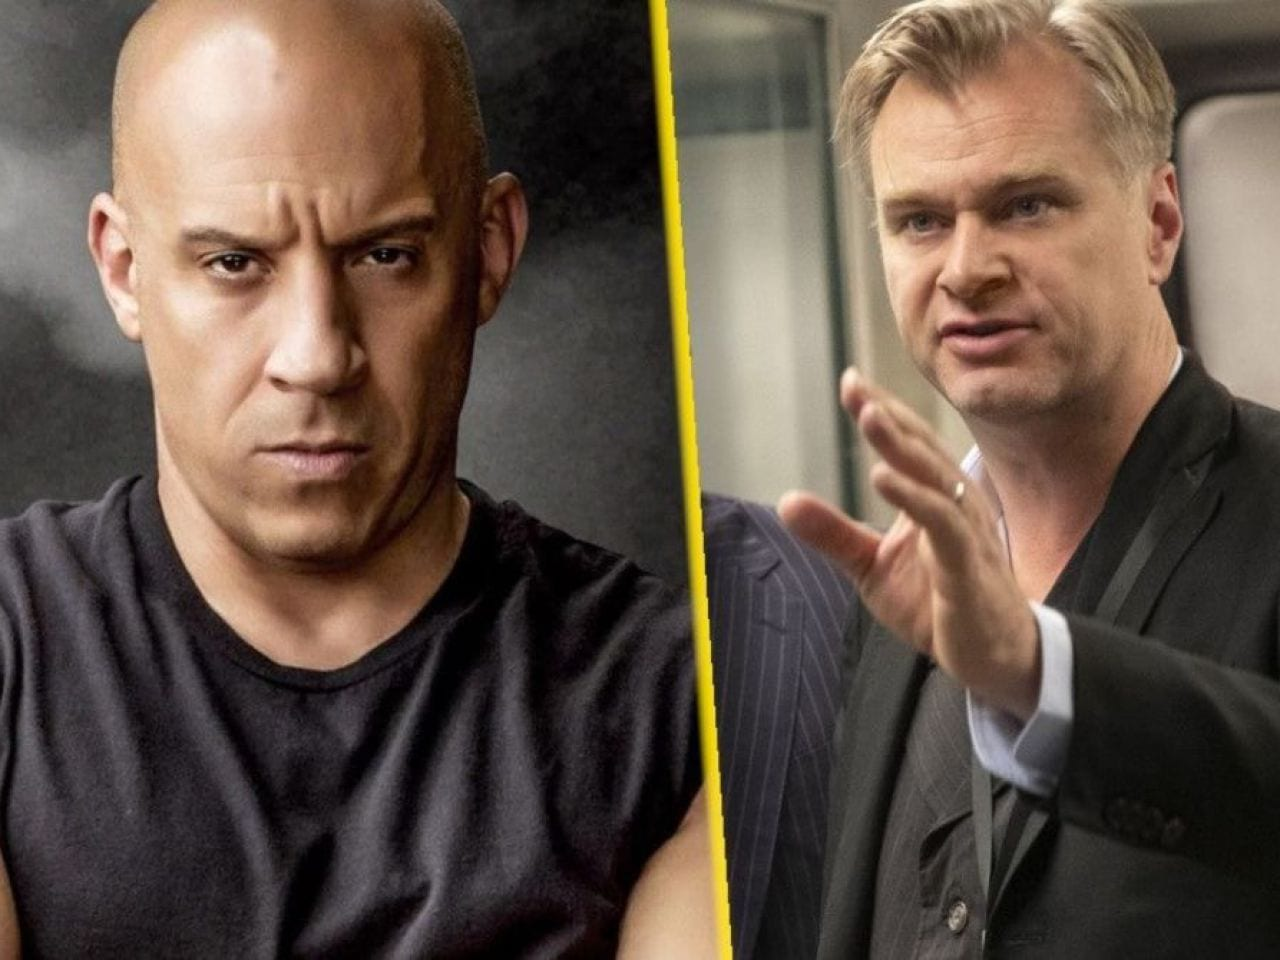 christopher-nolan-fast and furious